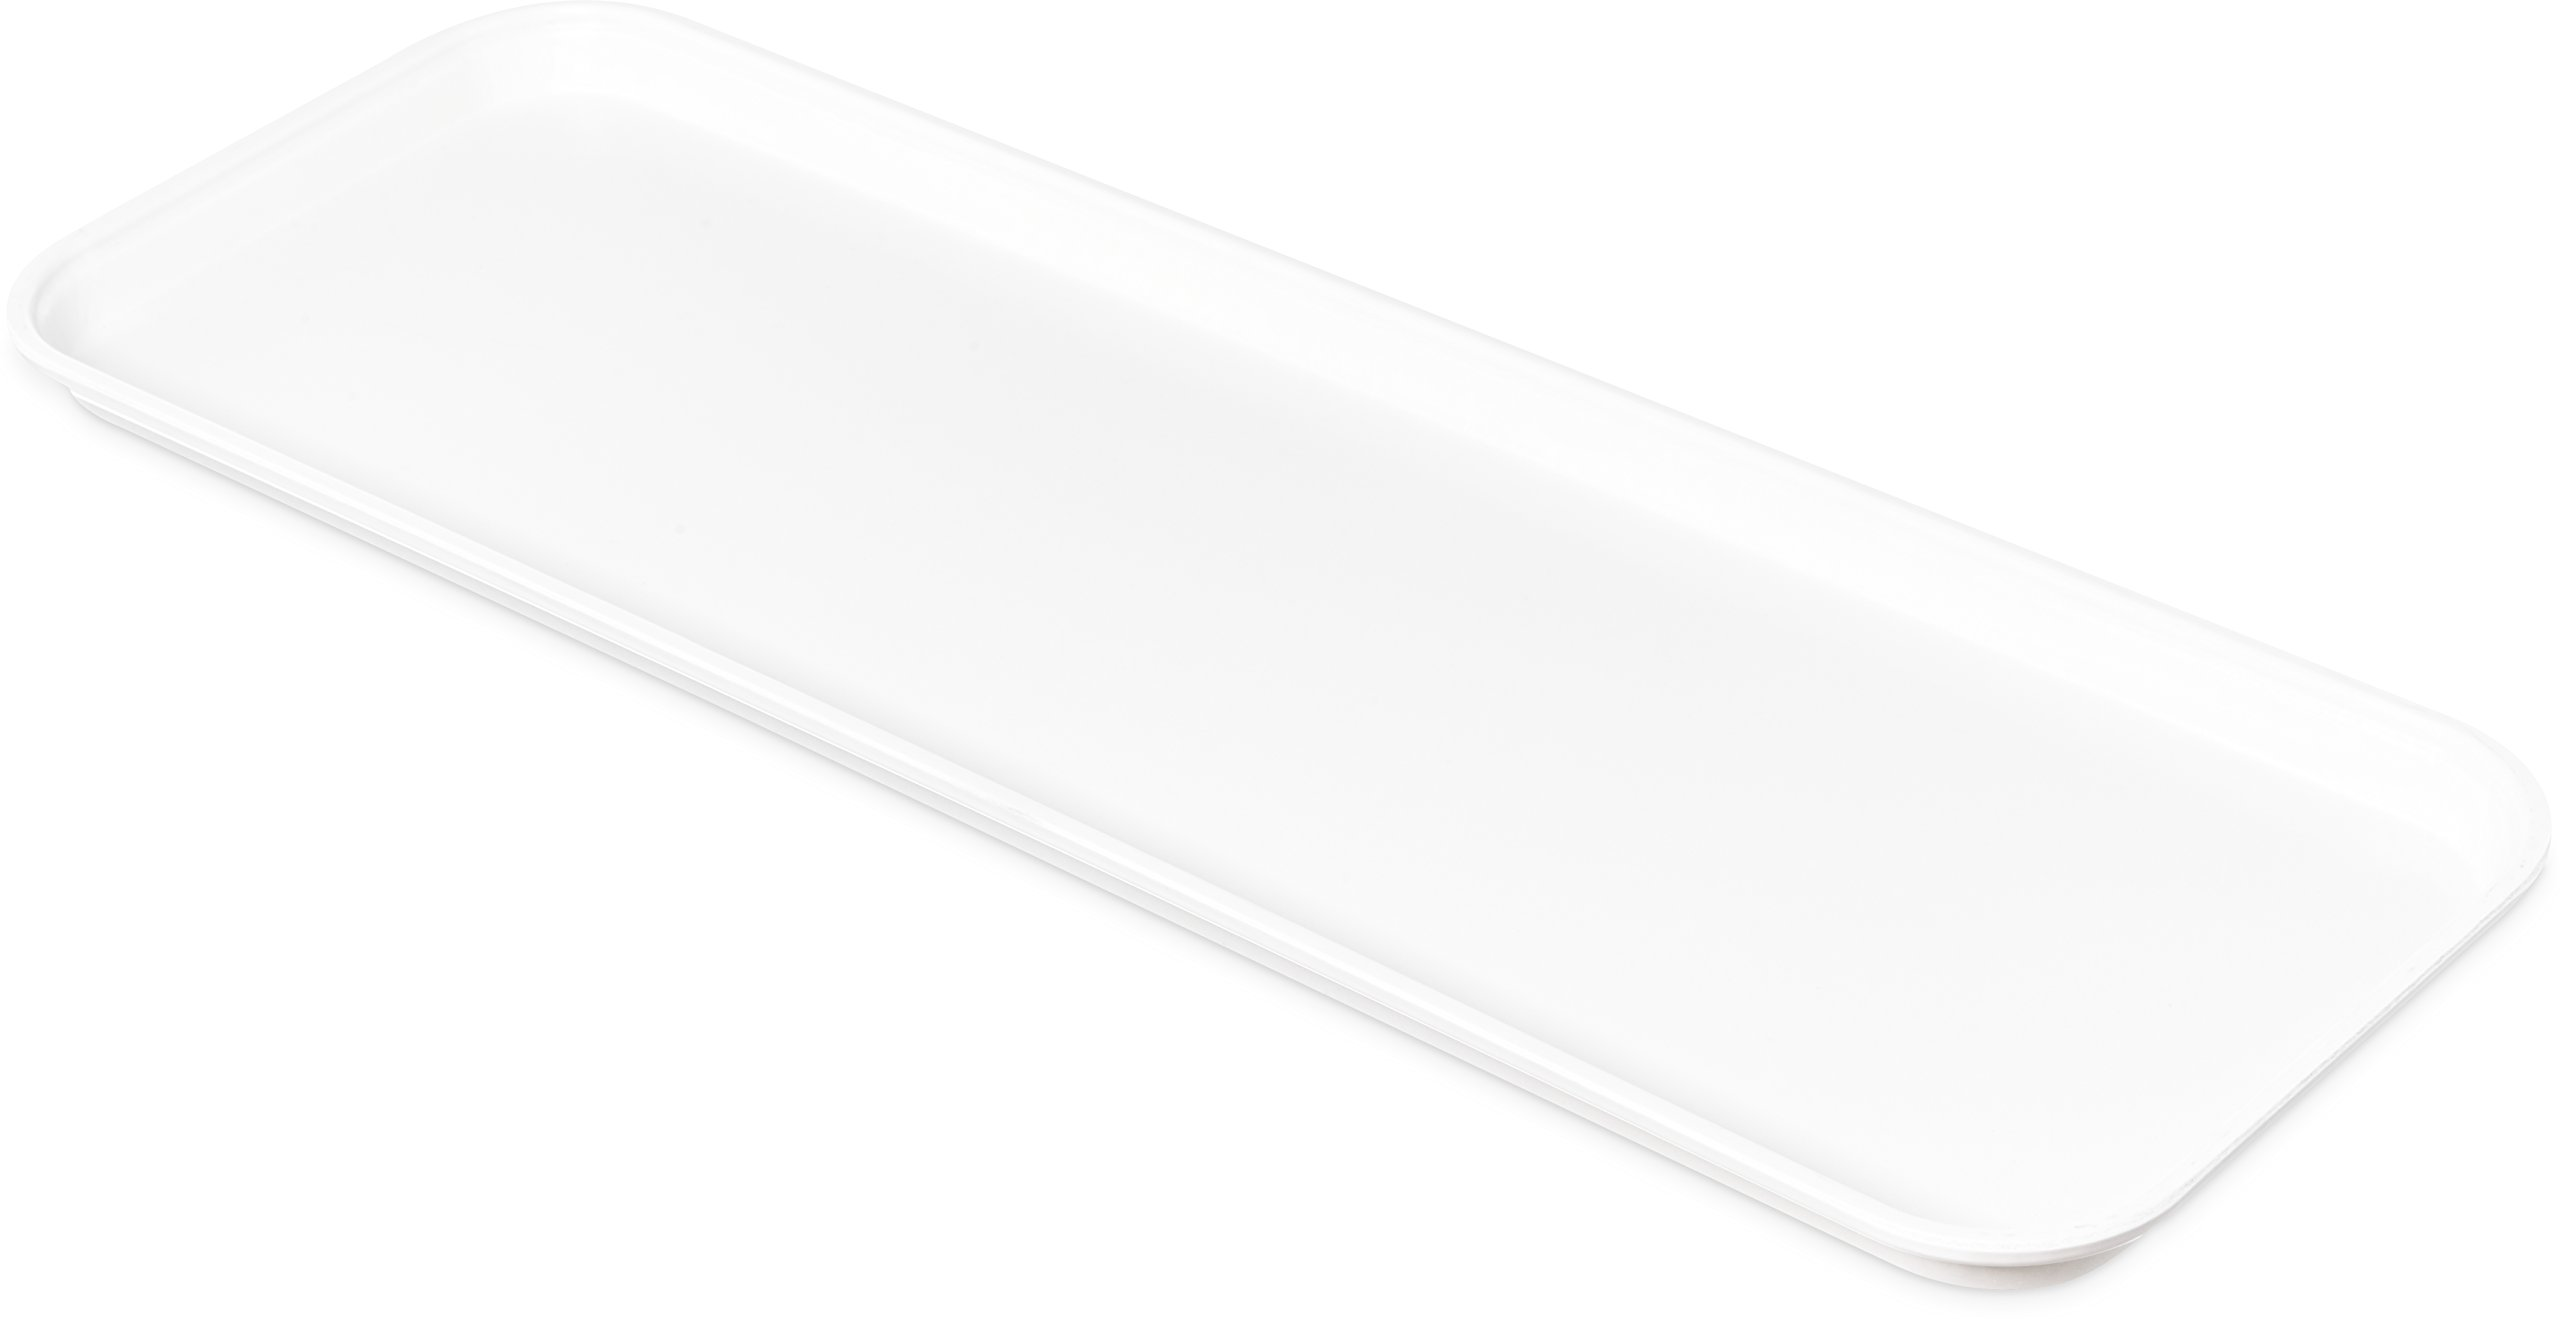 Carlisle 269FMT301 Food Service Display Tray, 9'' x 26'', White (Pack of 12)